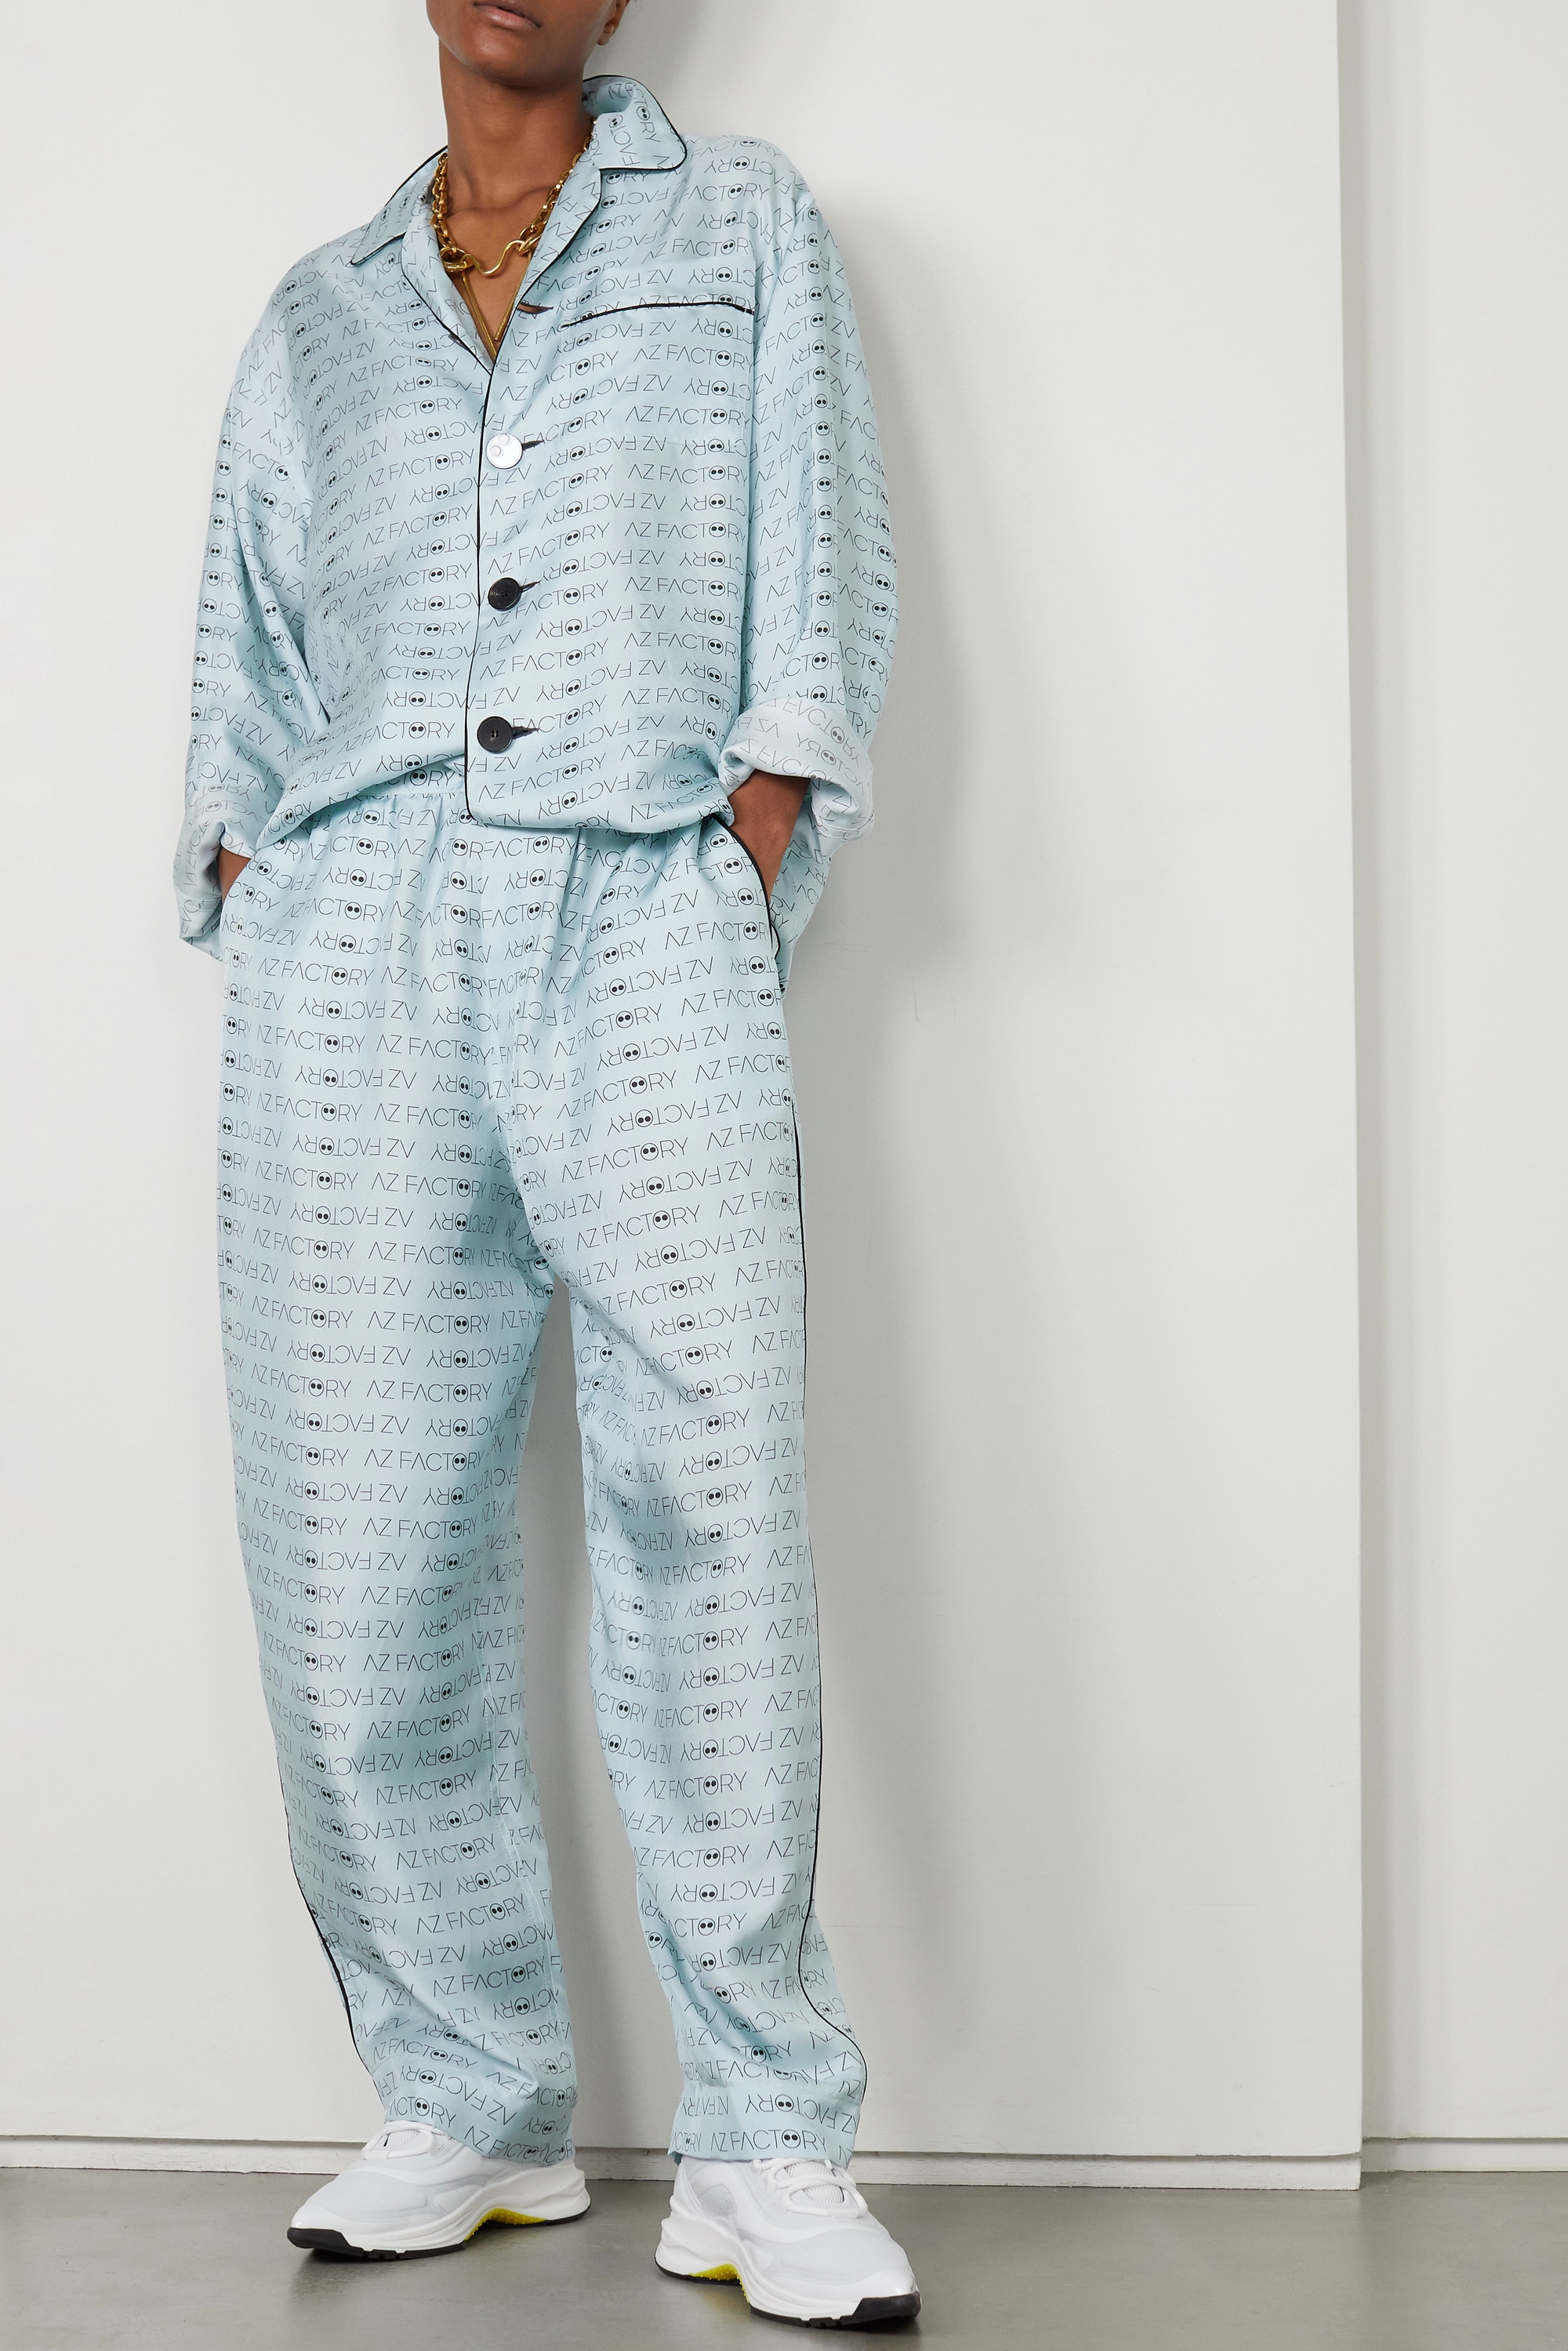 AZ FACTORY Pijama Look But Don't Touch printed silk-twill shirt